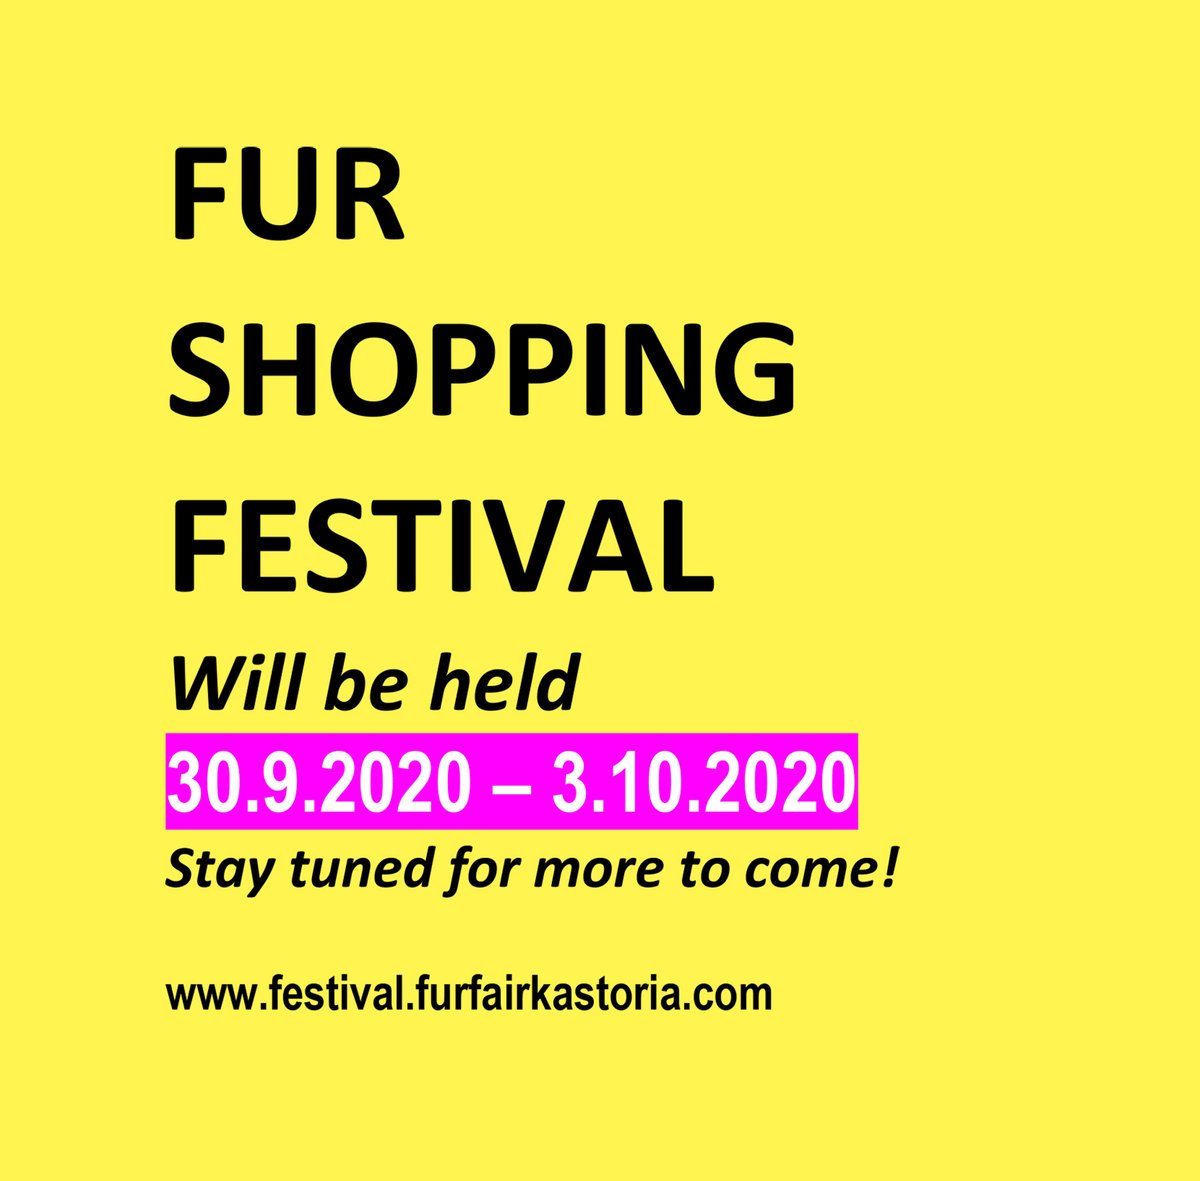 The 5th edition of FUR SHOPPING FESTIVAL, will be held 30.9.2020- 3.10.2020 at Kastoria International Exhibition Center, Kastoria-Greece. Stay tuned for more to come! https://t.co/6MOa8zESKD #furshoppingfestival #ootd #fur #fashion #шуба #мех #shoppingtherapy #ootn #sale https://t.co/oHxqZJ40RW